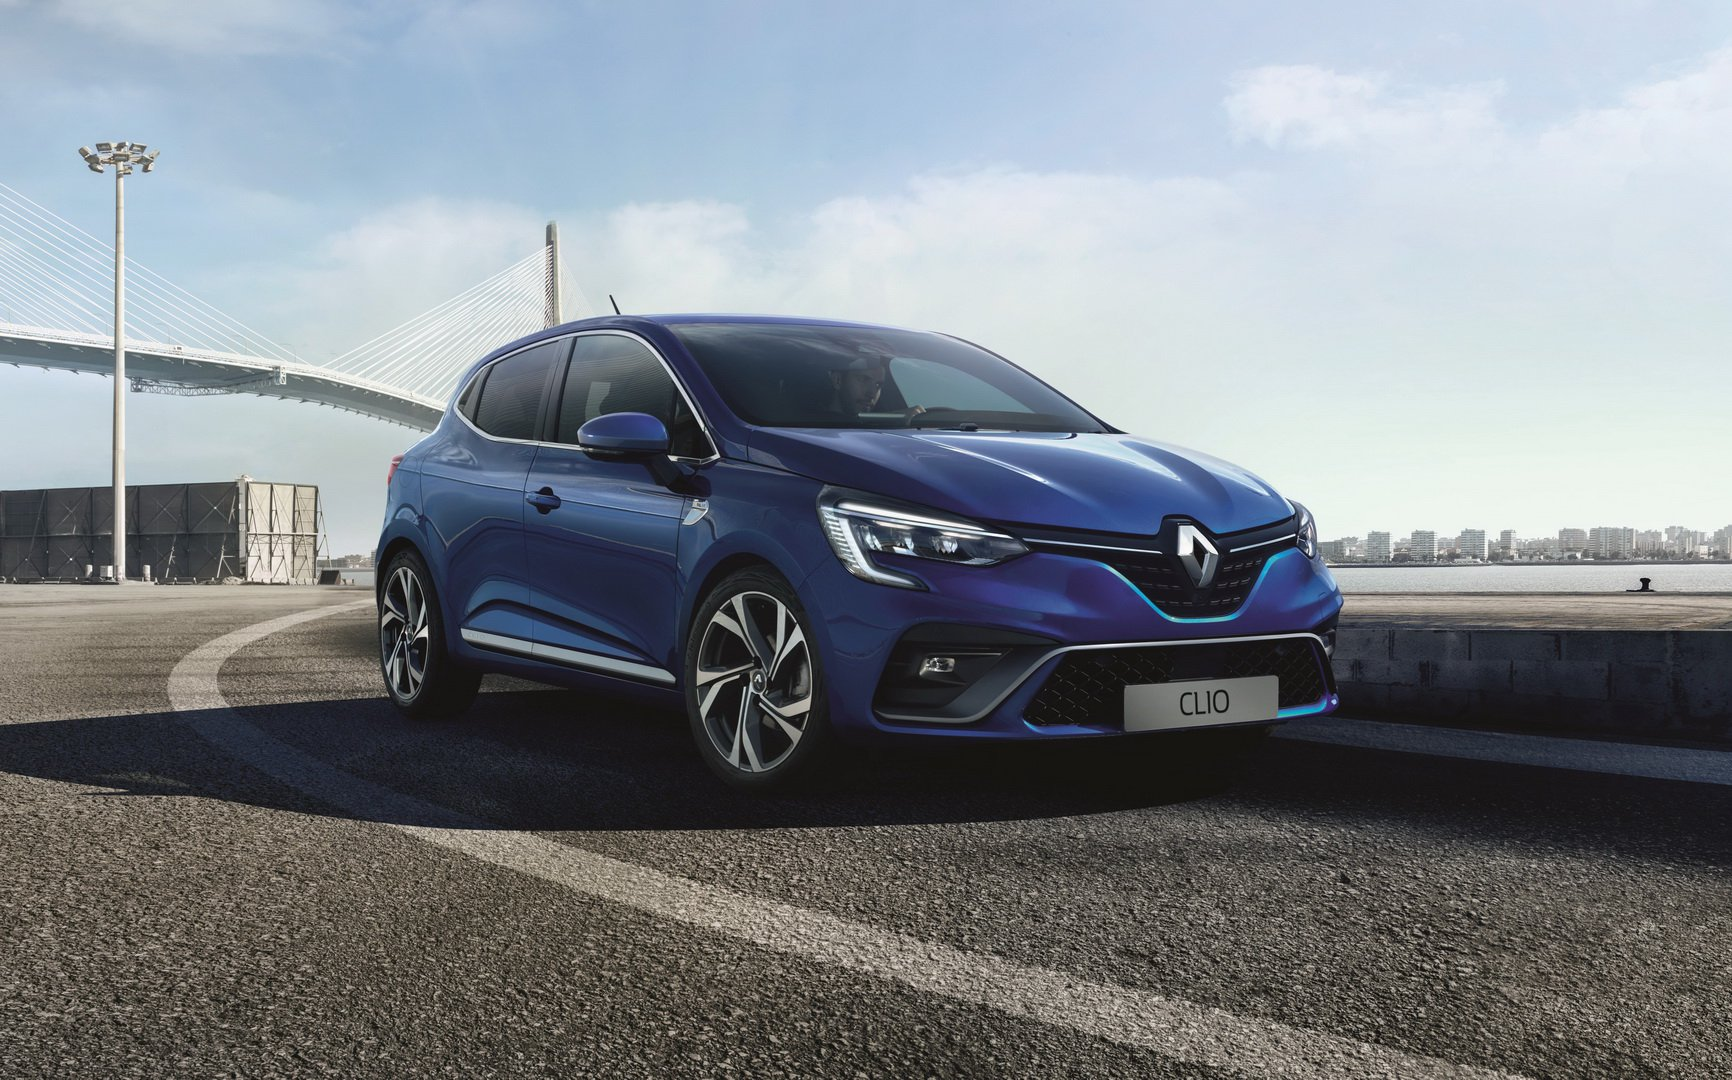 2019 renault clio adds r s line initiale paris trim. Black Bedroom Furniture Sets. Home Design Ideas